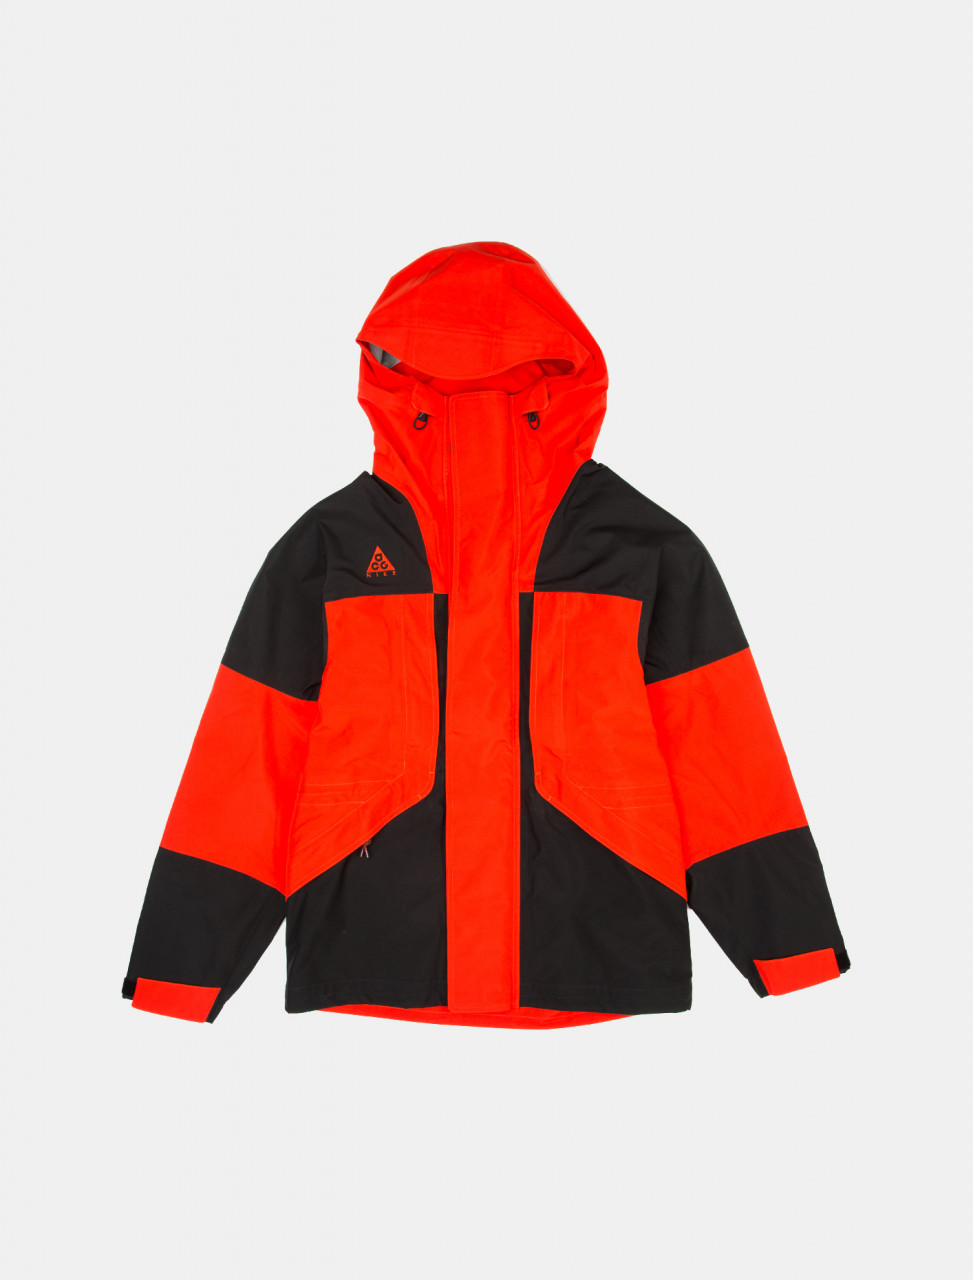 Nike ACG Hooded GORE-Tex Jacket